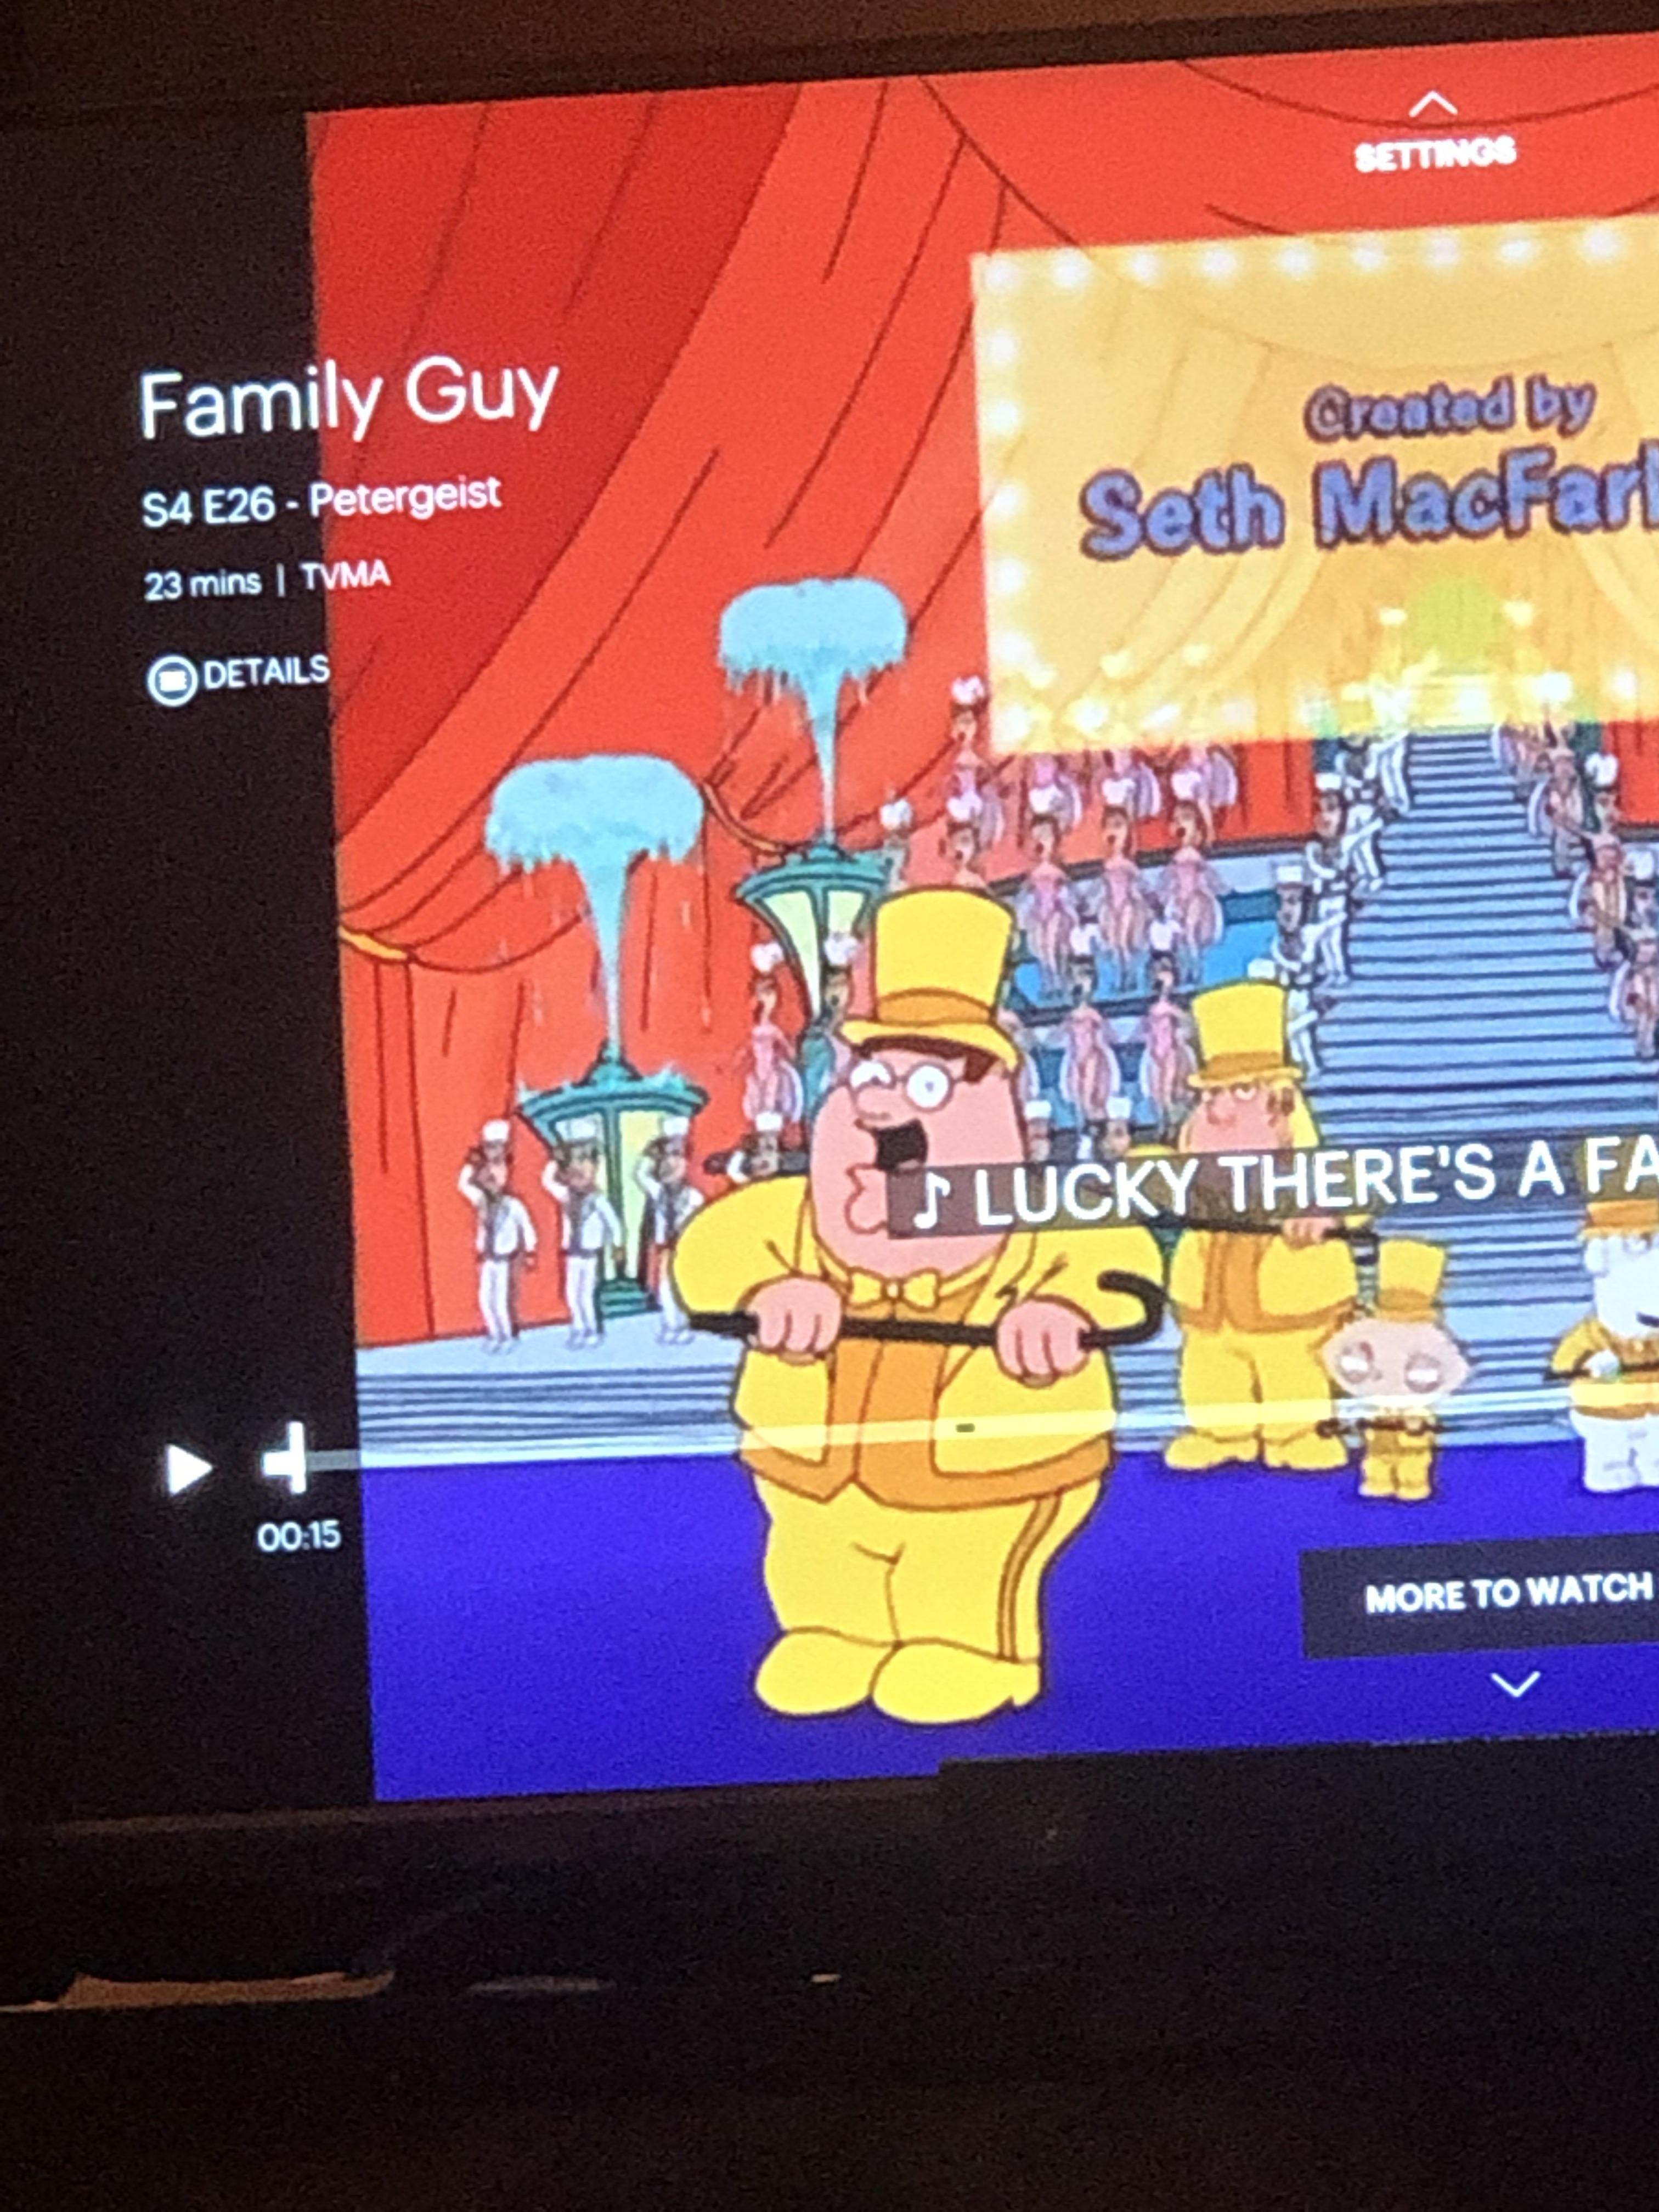 Why Did Netflix Remove Family Guy Seasons : netflix, remove, family, seasons, Rewatching, Family, Noticed, Episodes, TV-MA, Others, TV-14,, Thought, Censored, Which, Makes, Curious, Dubbed, Mature,